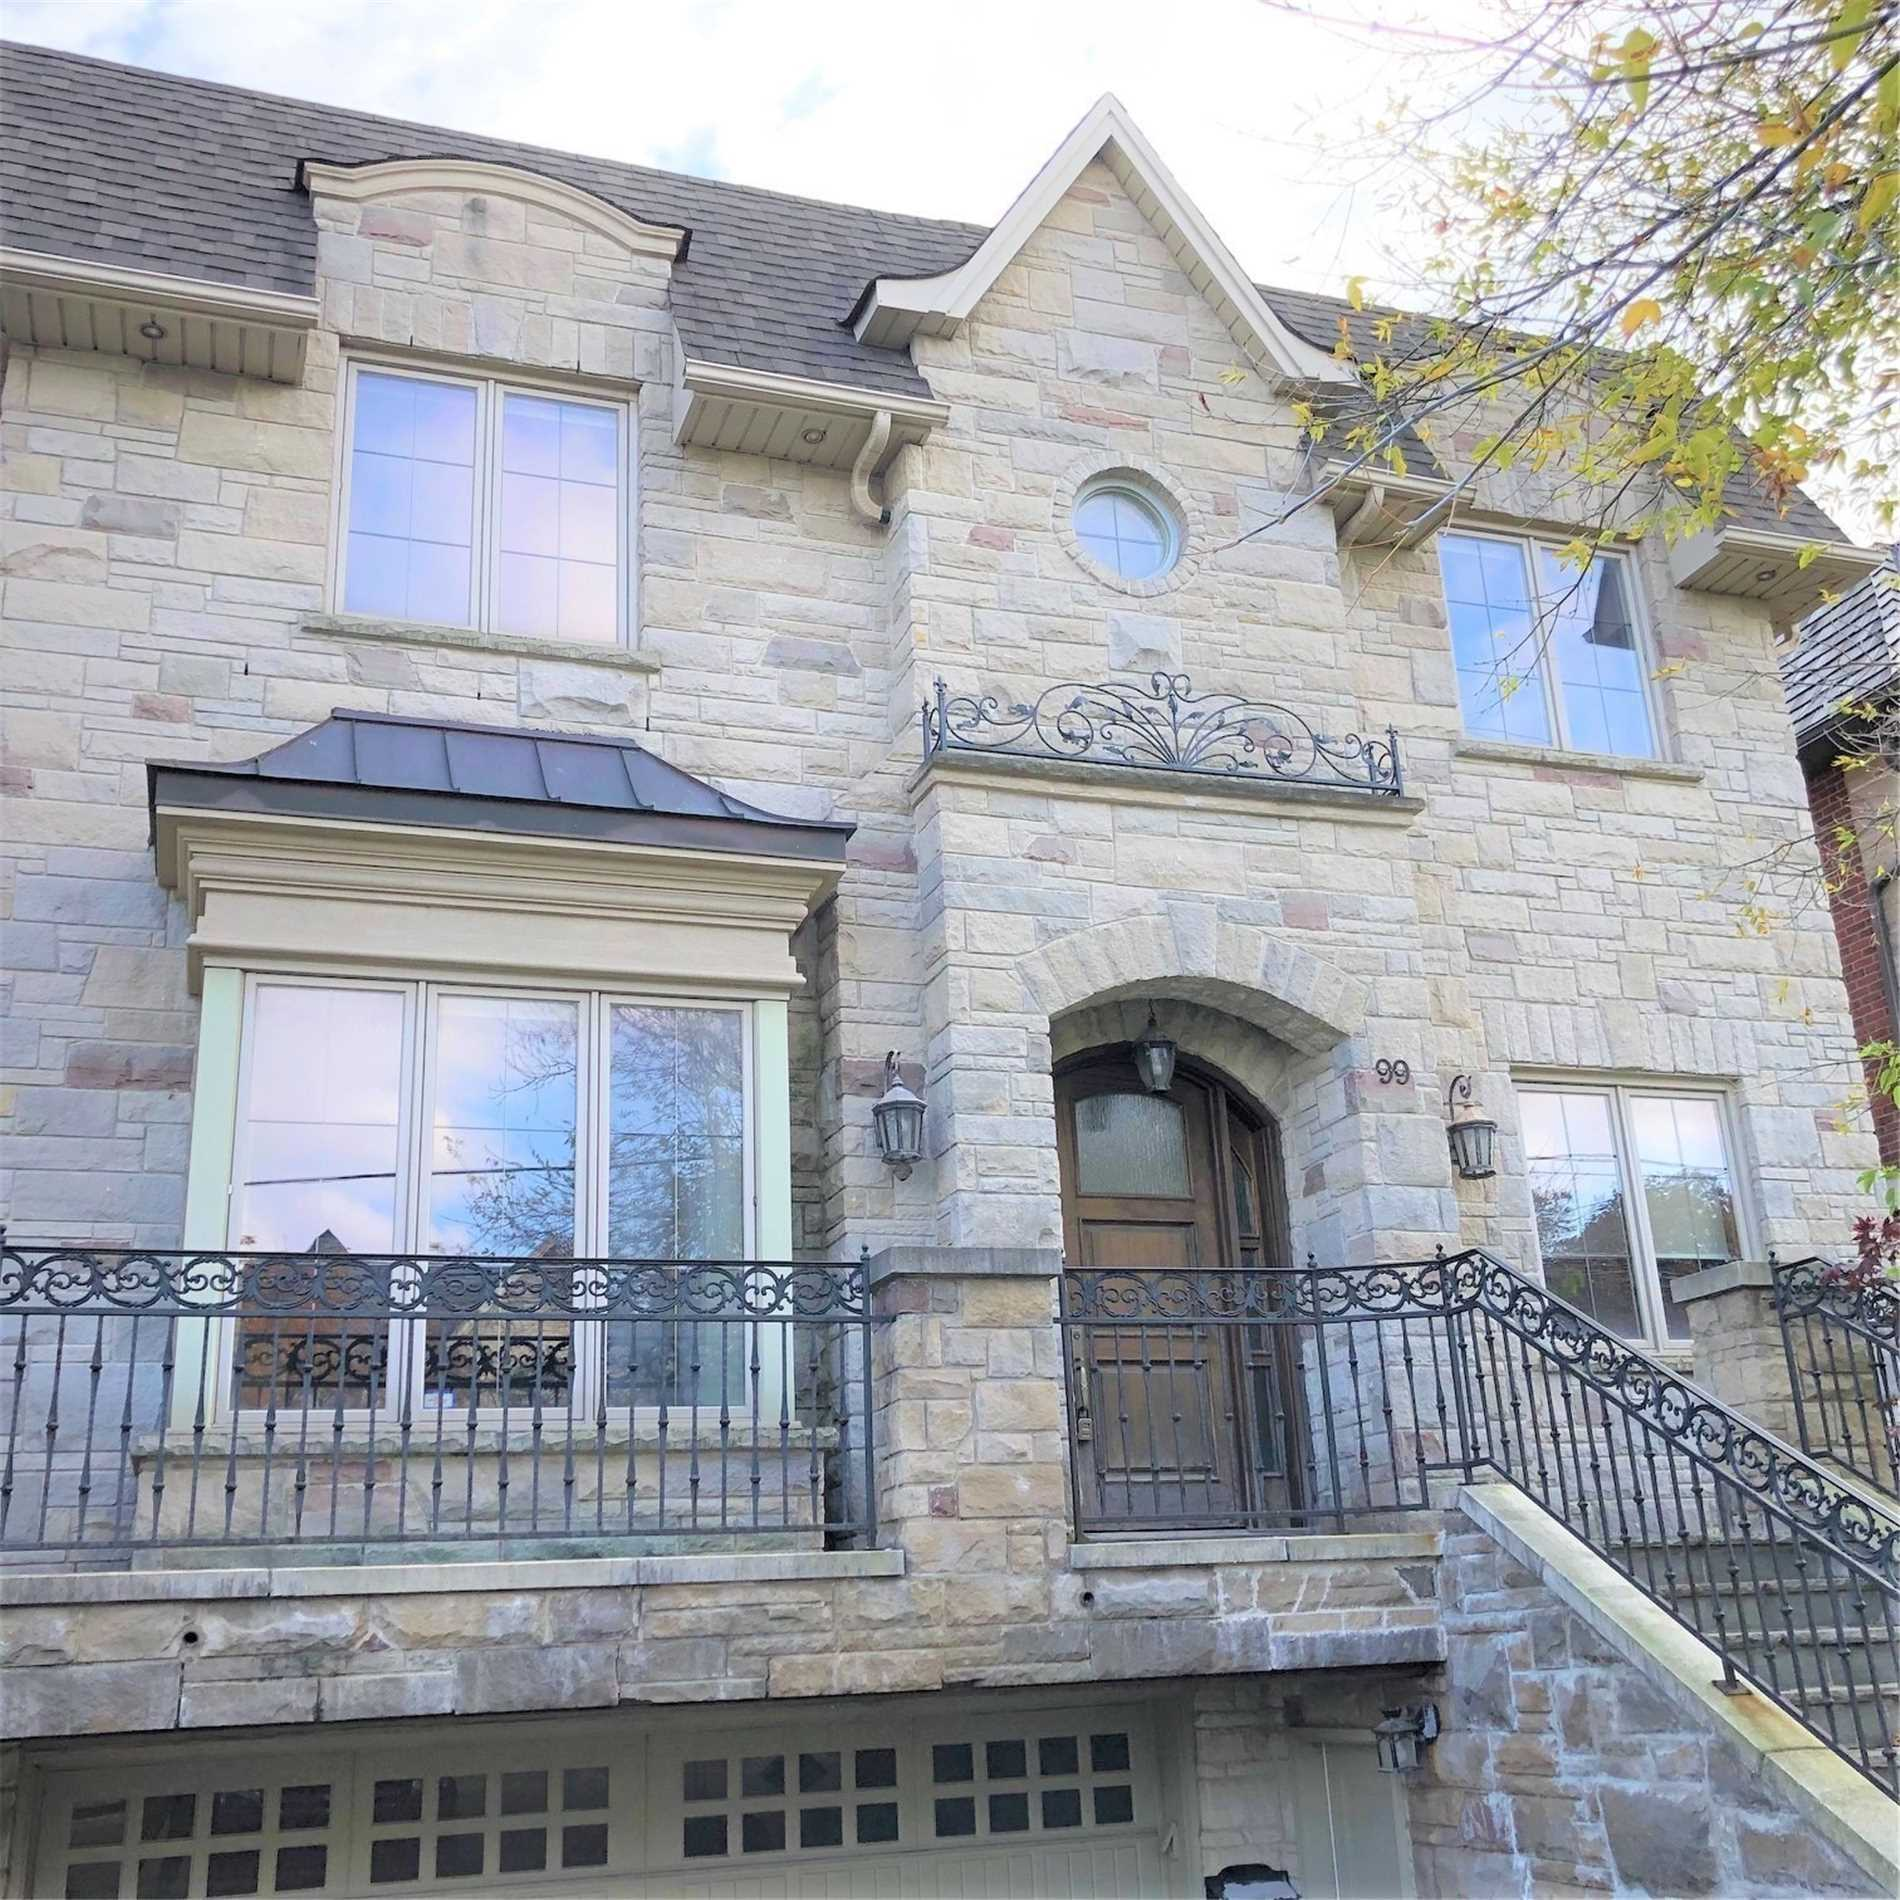 Detached house For Lease In Toronto - 99 Bannockburn Ave, Toronto, Ontario, Canada M5M2M9 , 4 Bedrooms Bedrooms, ,6 BathroomsBathrooms,Detached,For Lease,Bannockburn